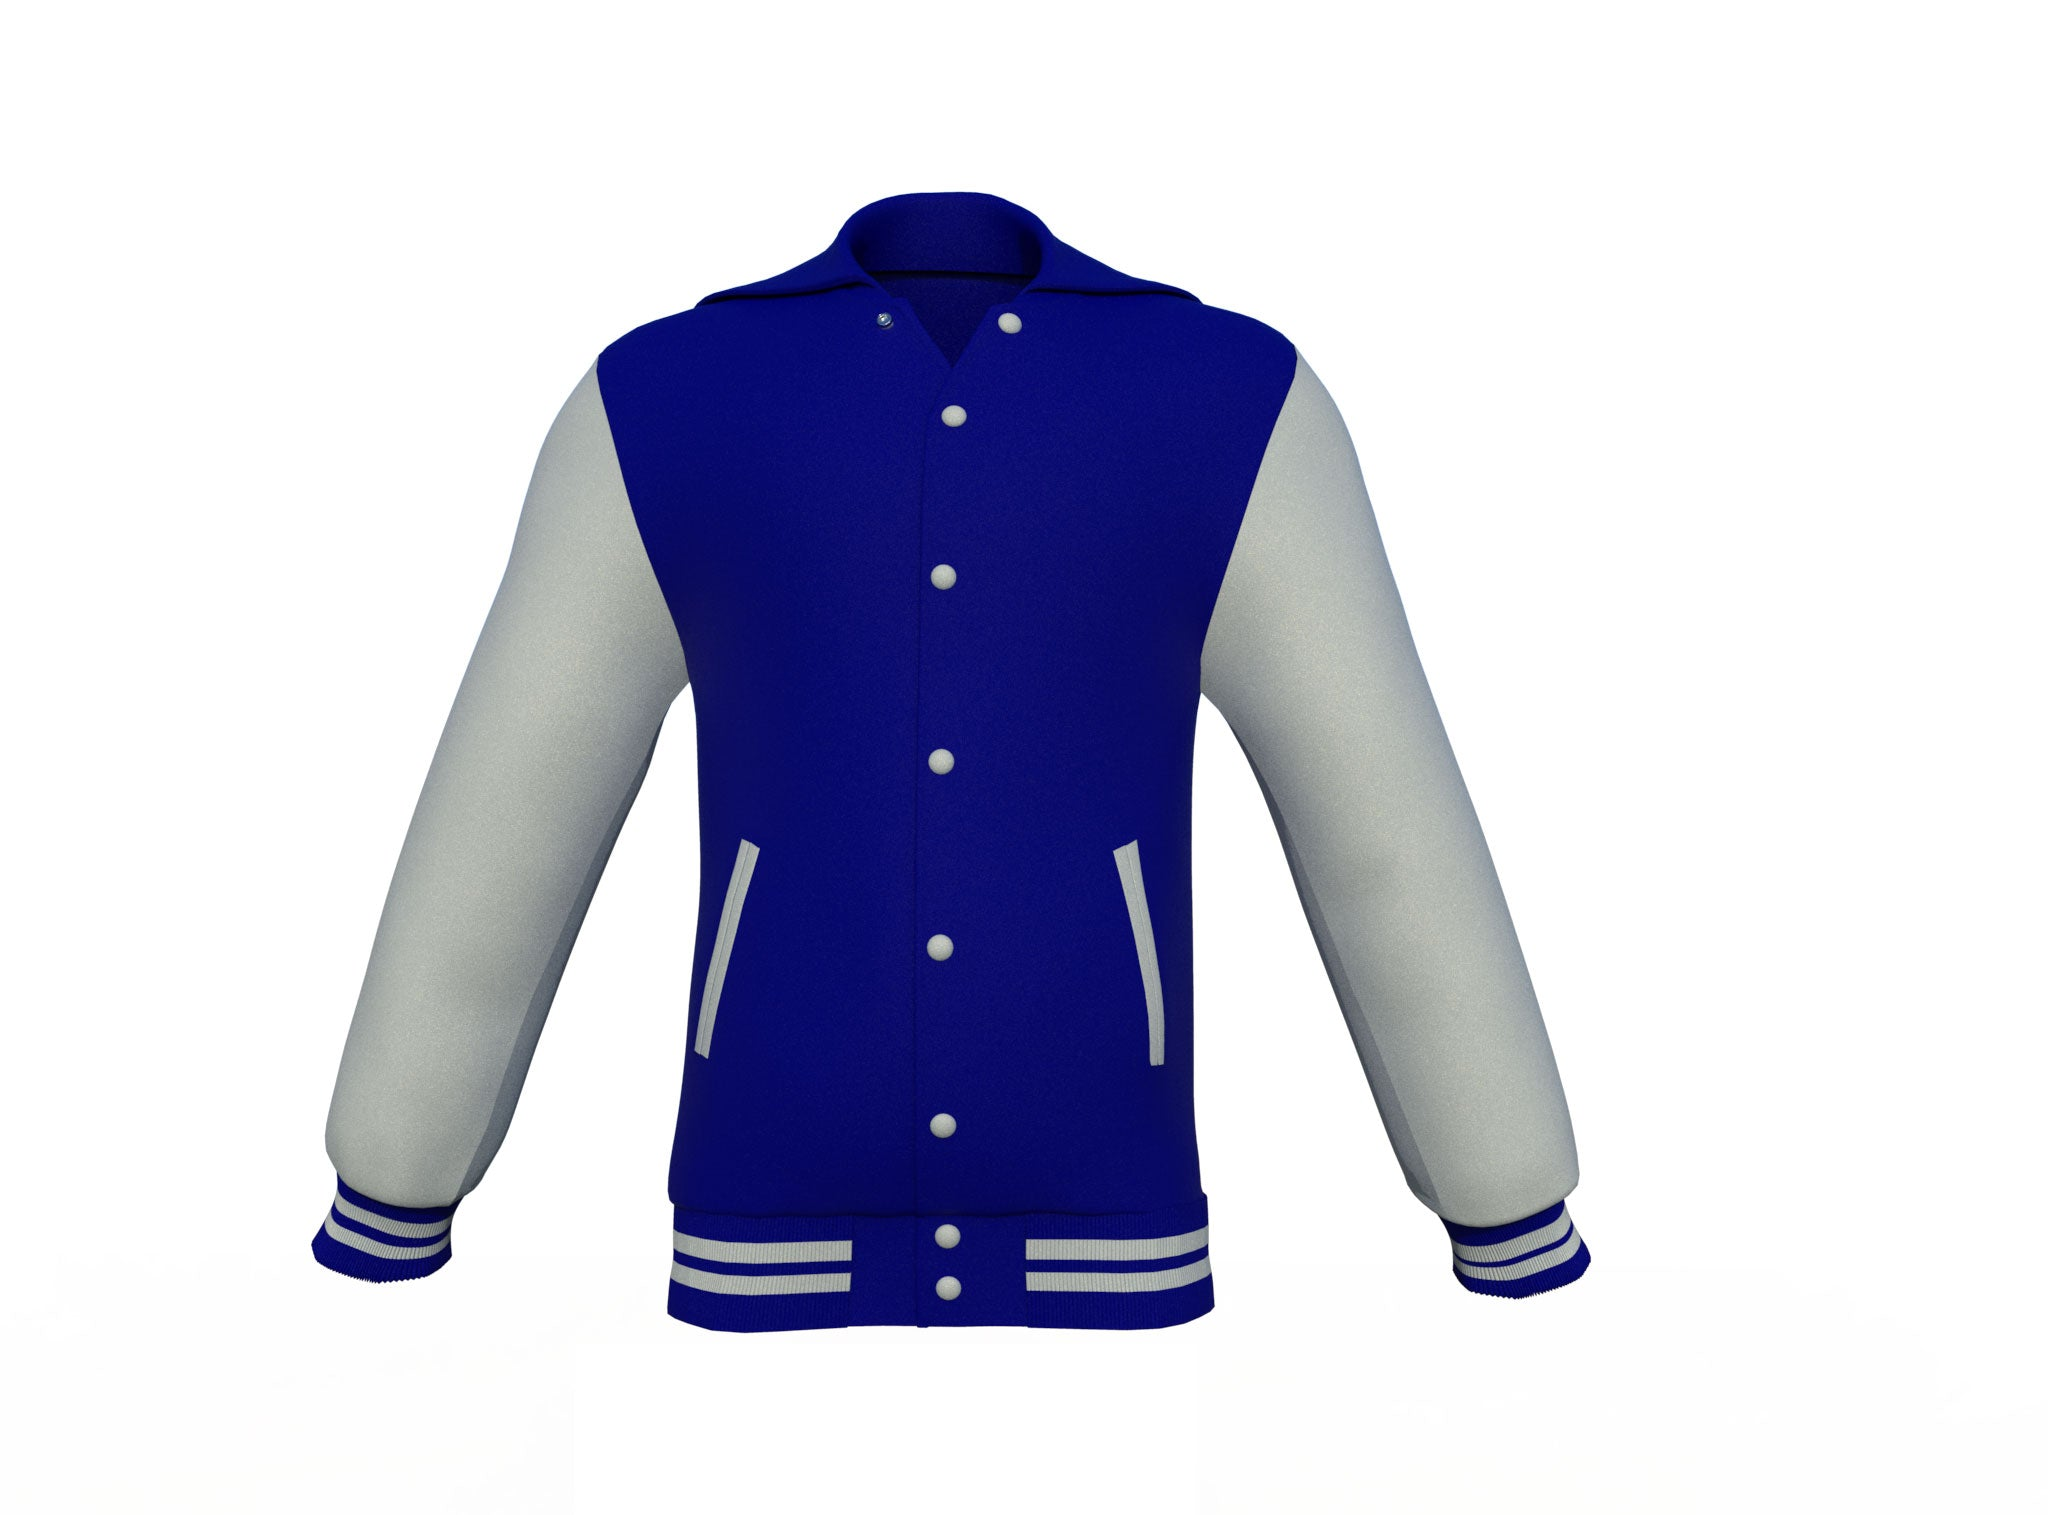 Navy Varsity Letterman Jacket with Grey Sleeves